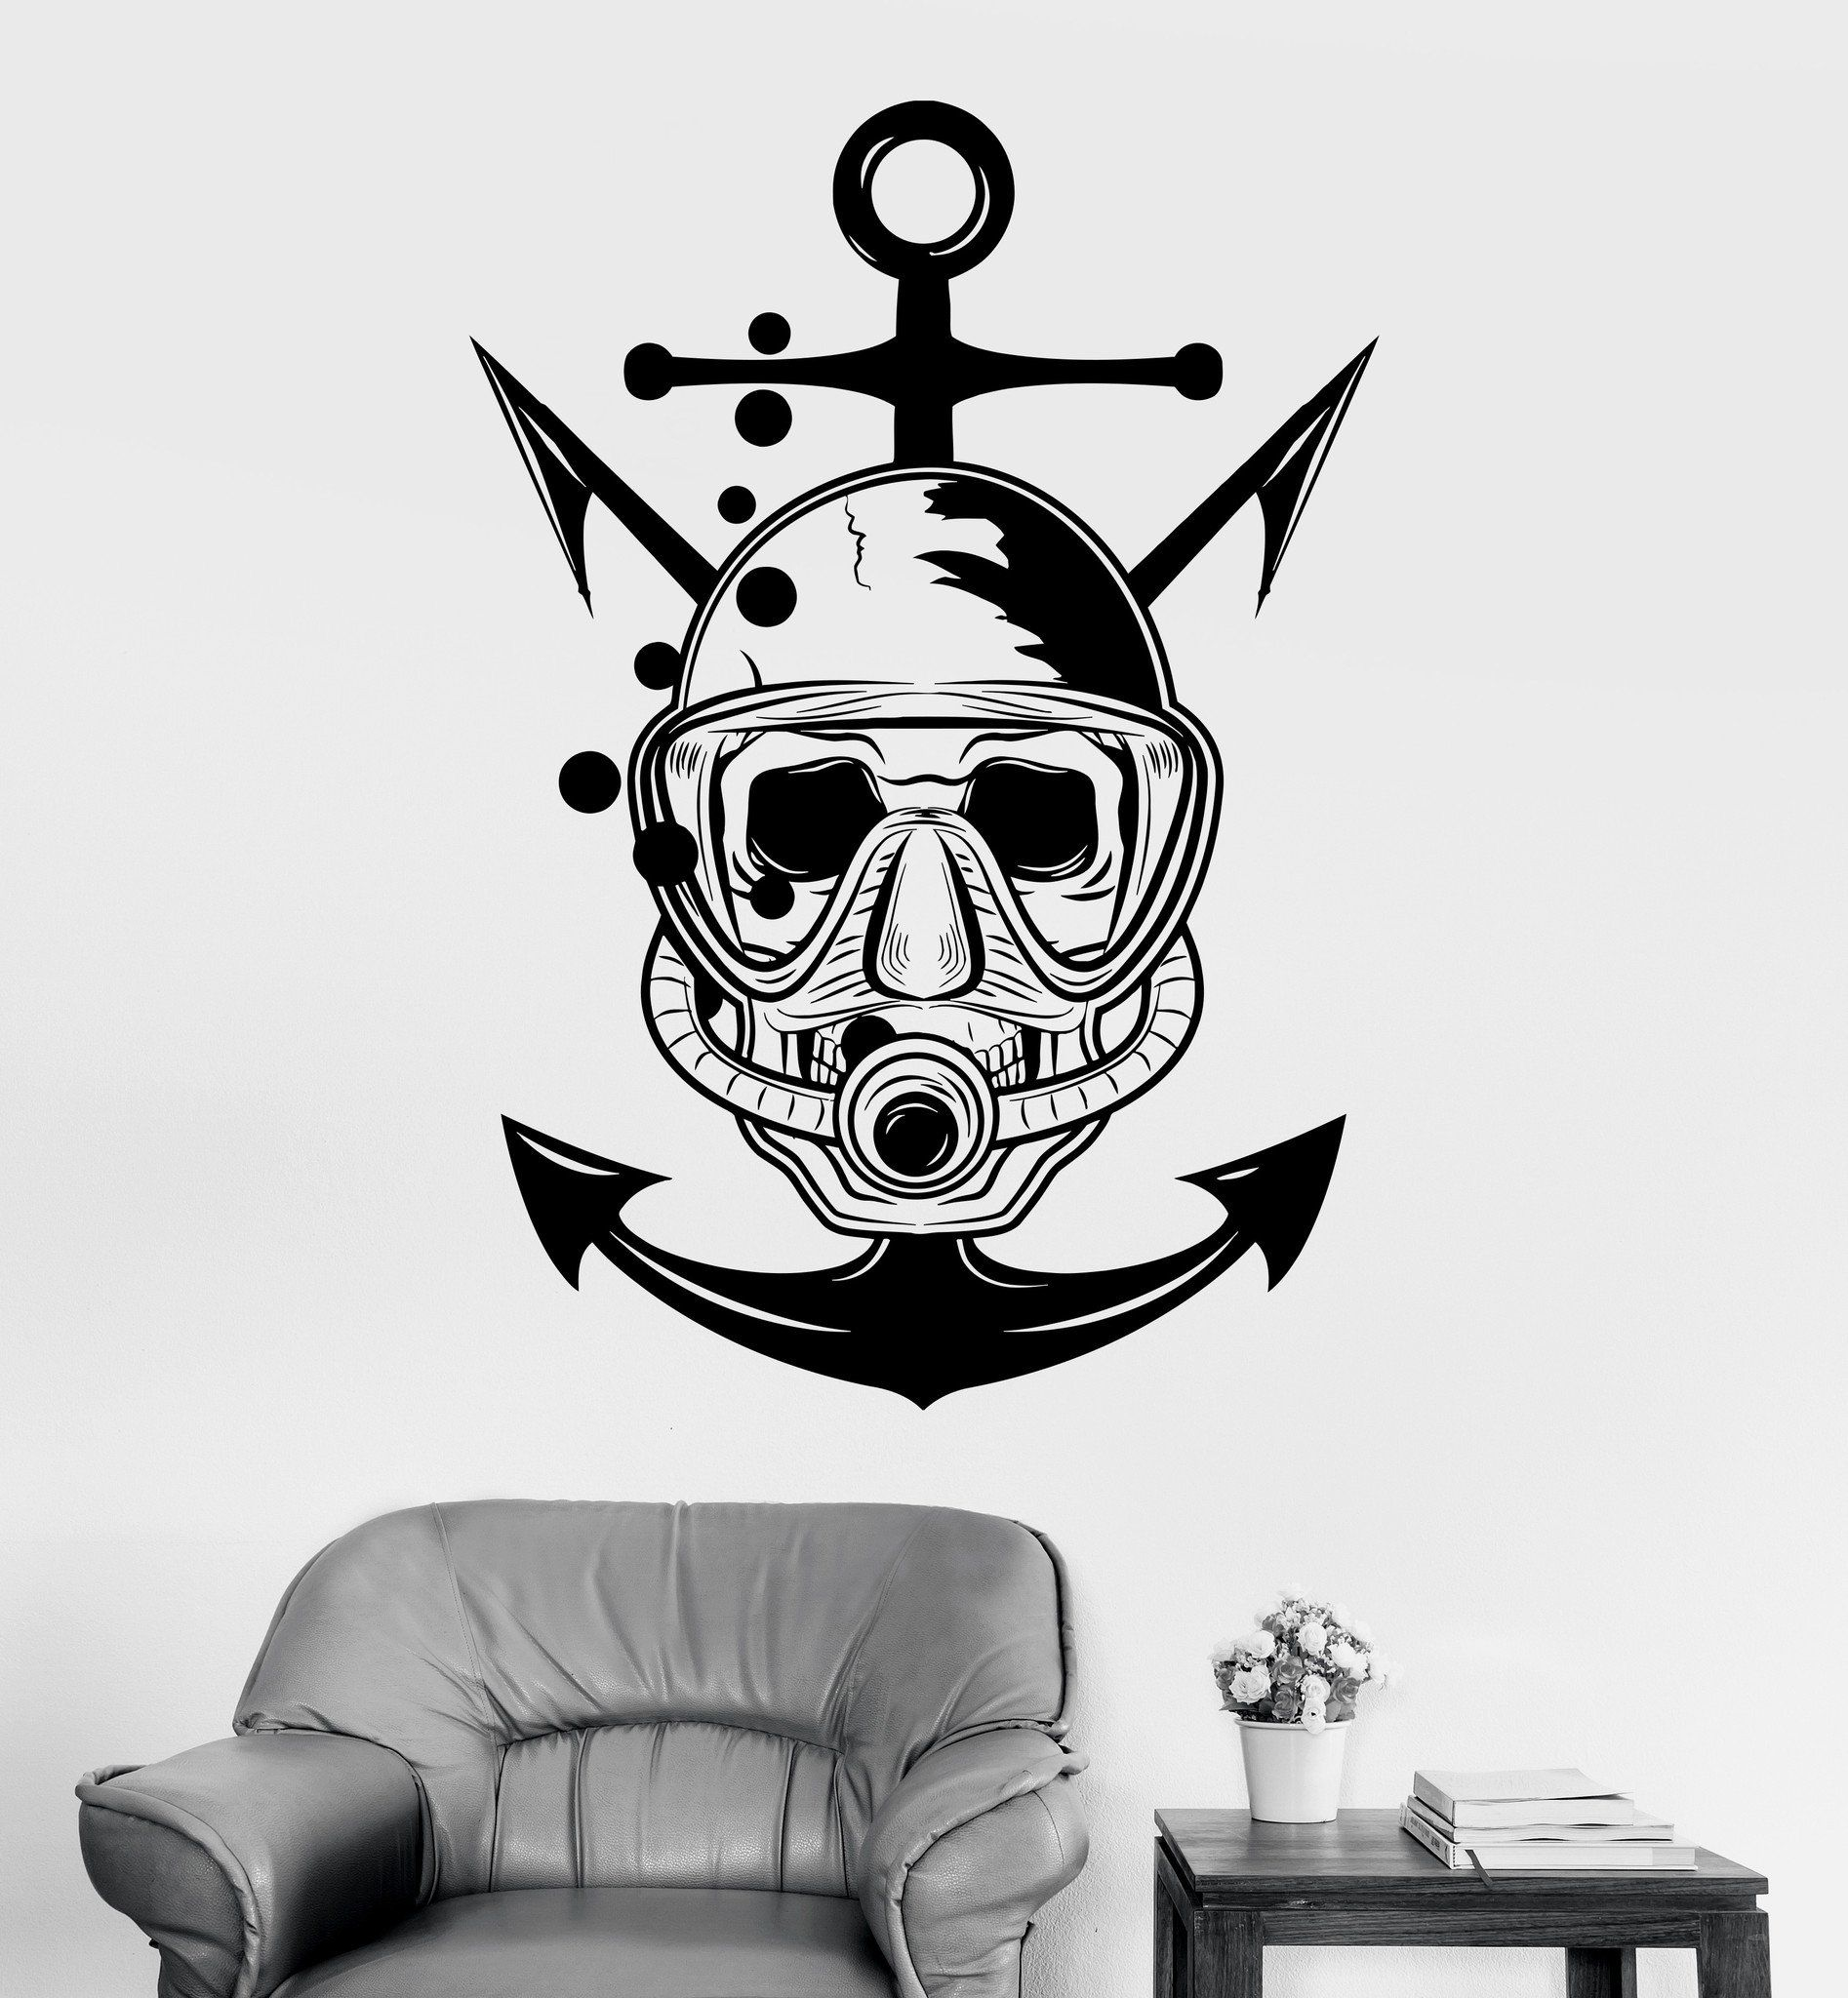 Pin By Roger Shields On Diving Stuff T Diving Diver Tattoo